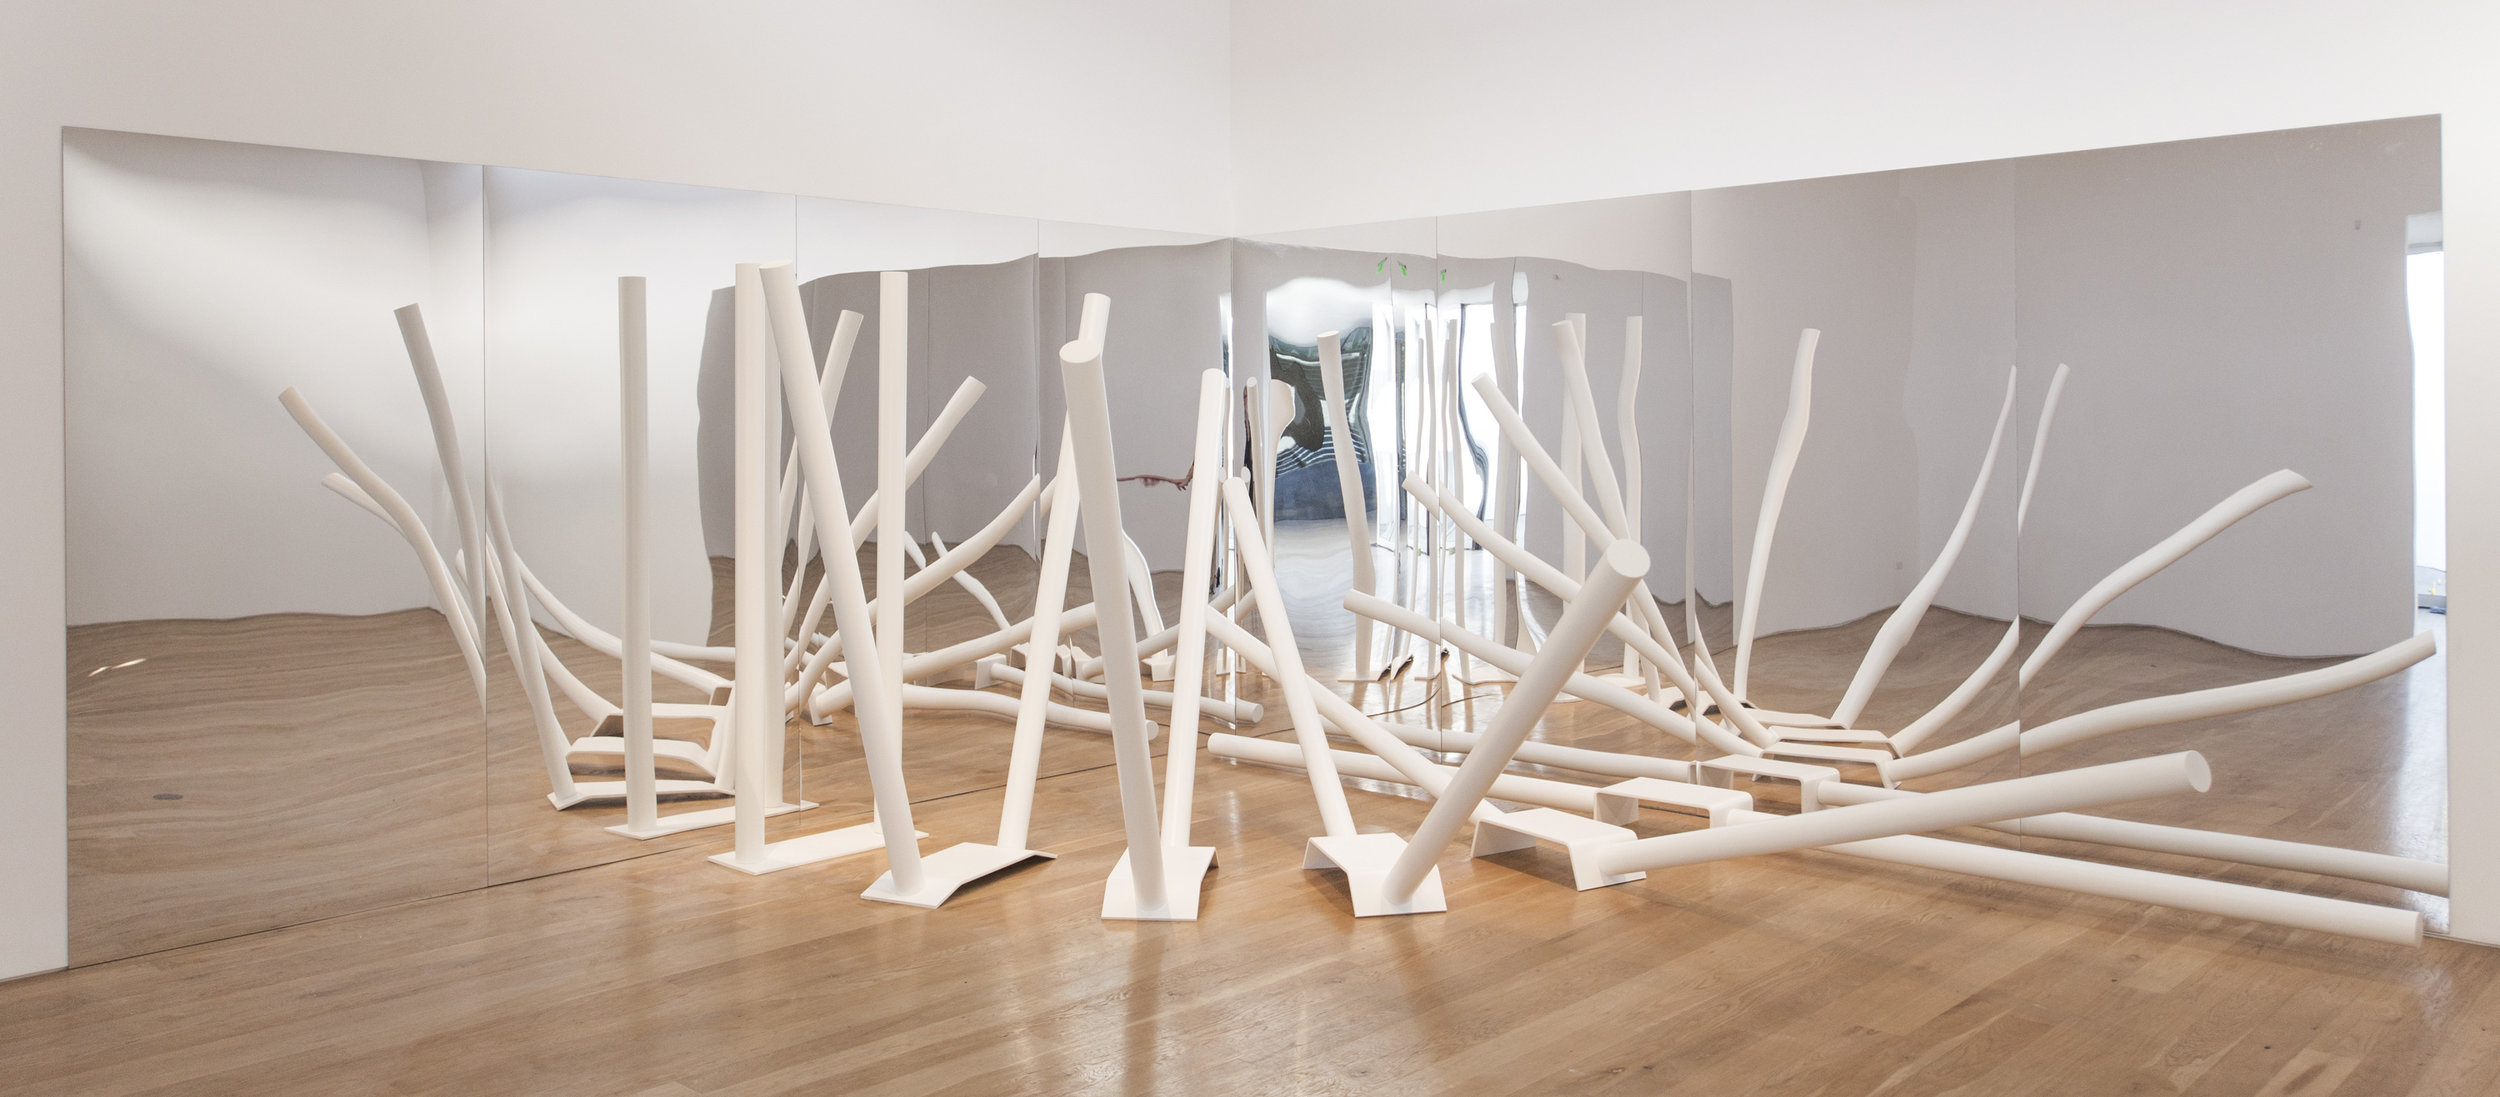 Ray Barrie,  Installation view, 2014